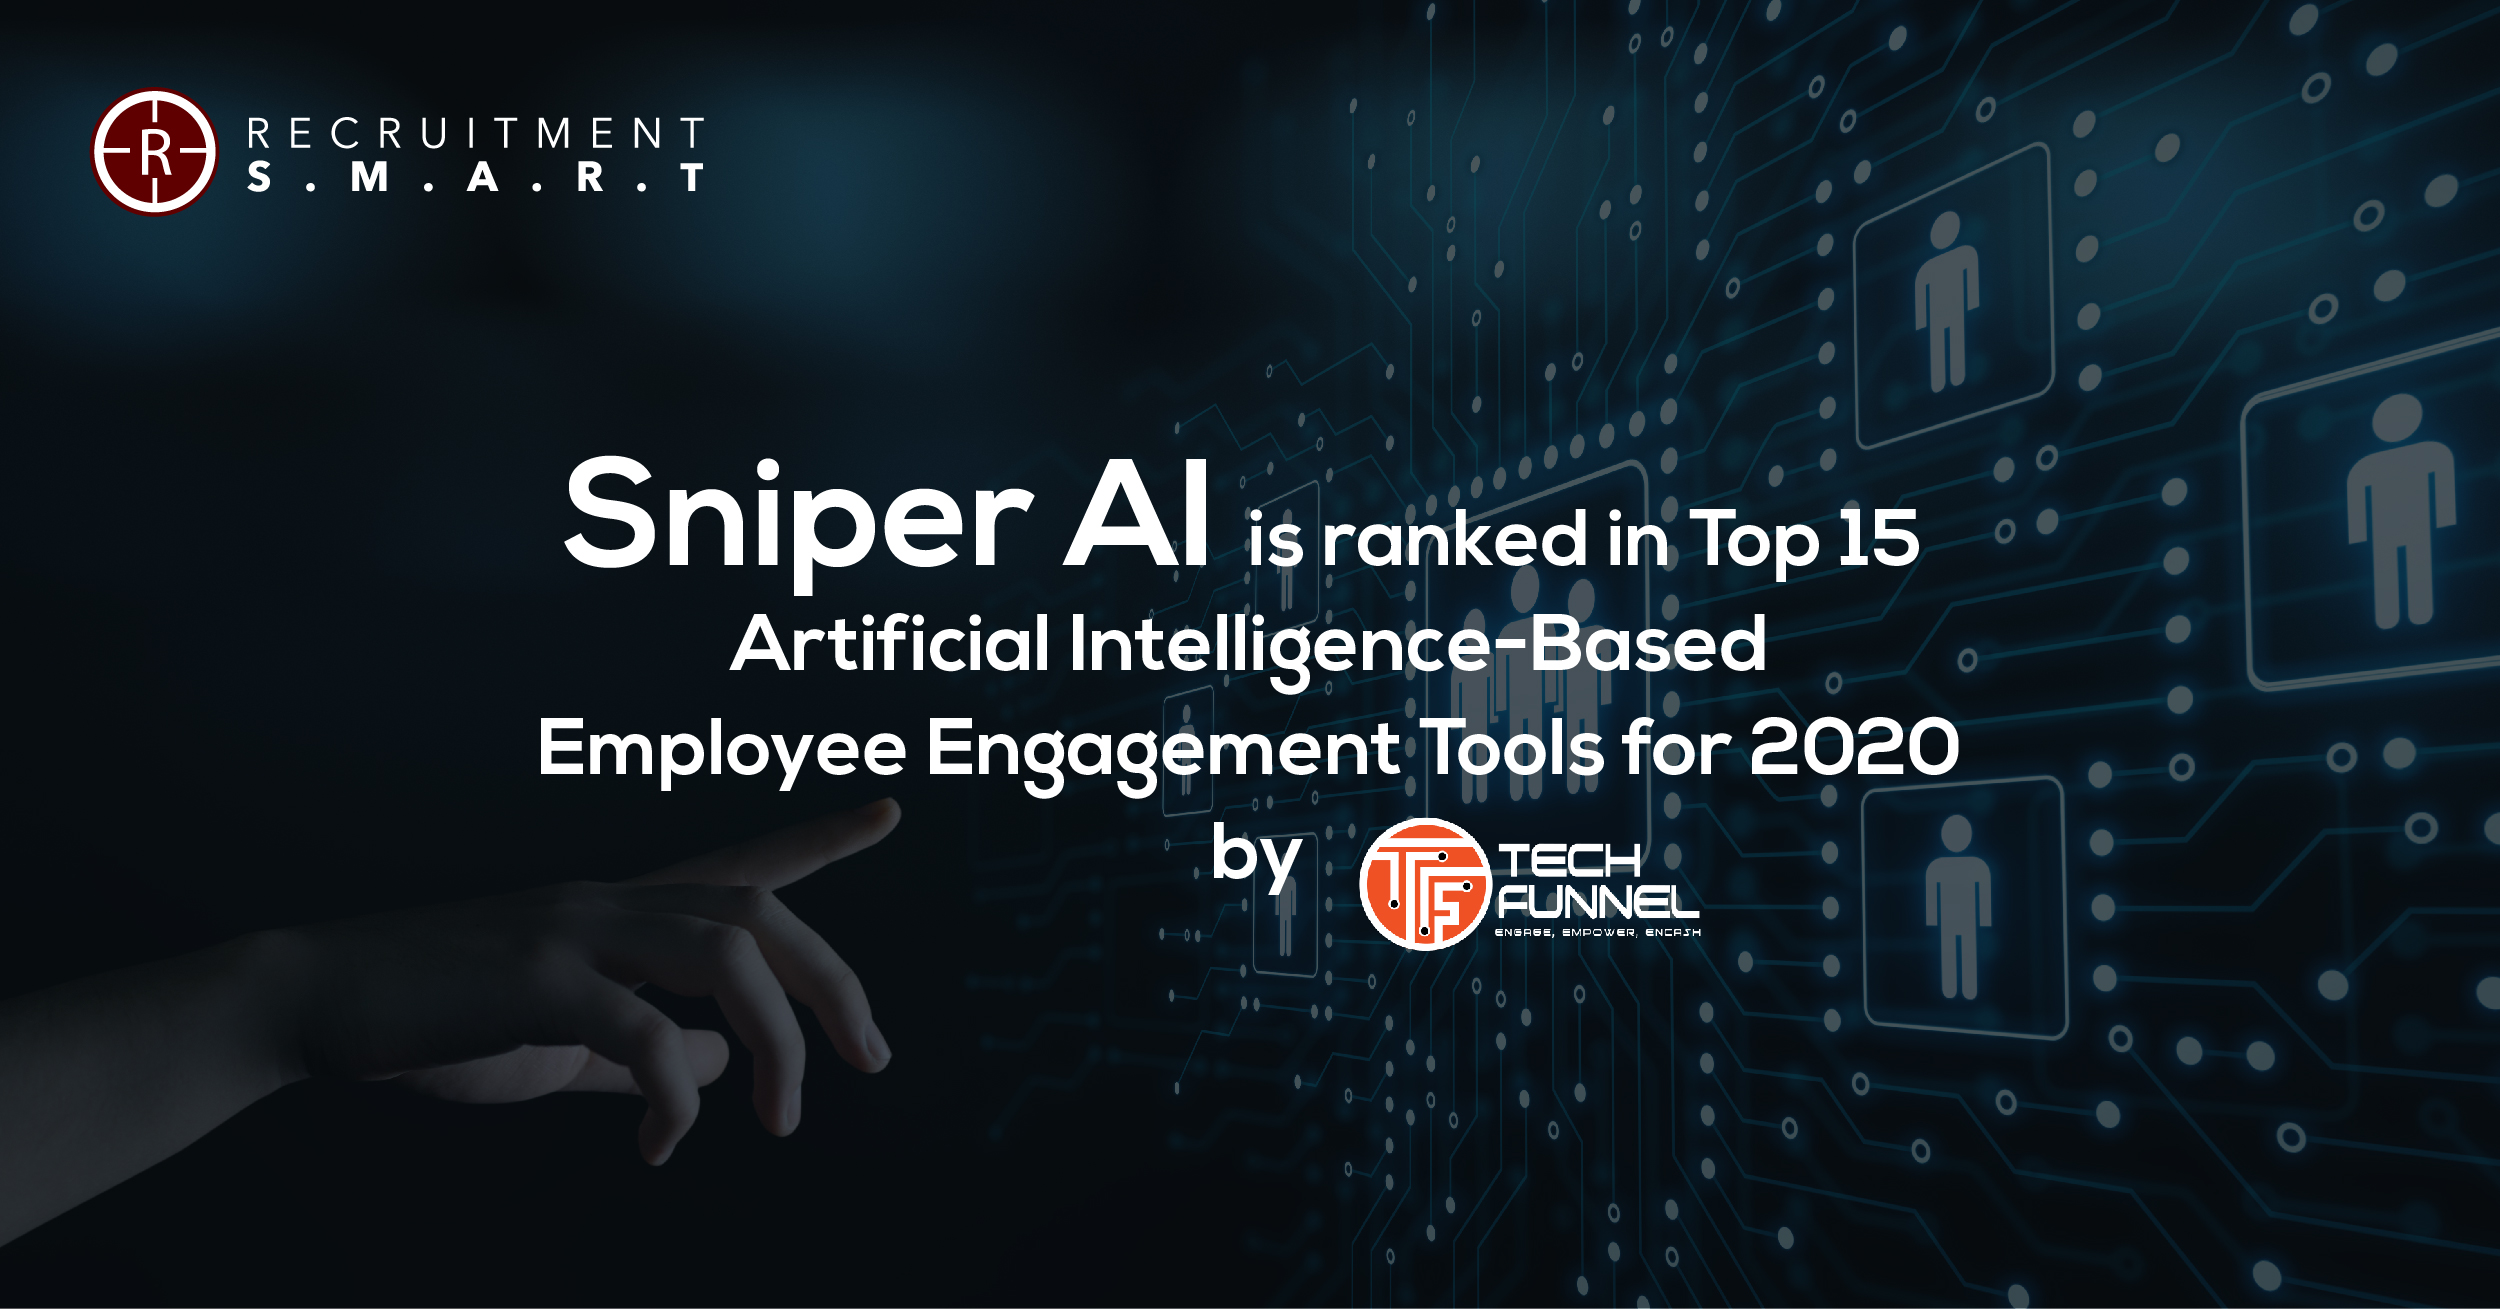 Top 15 Artificial Intelligence-Based Employee Engagement Tools for 2020